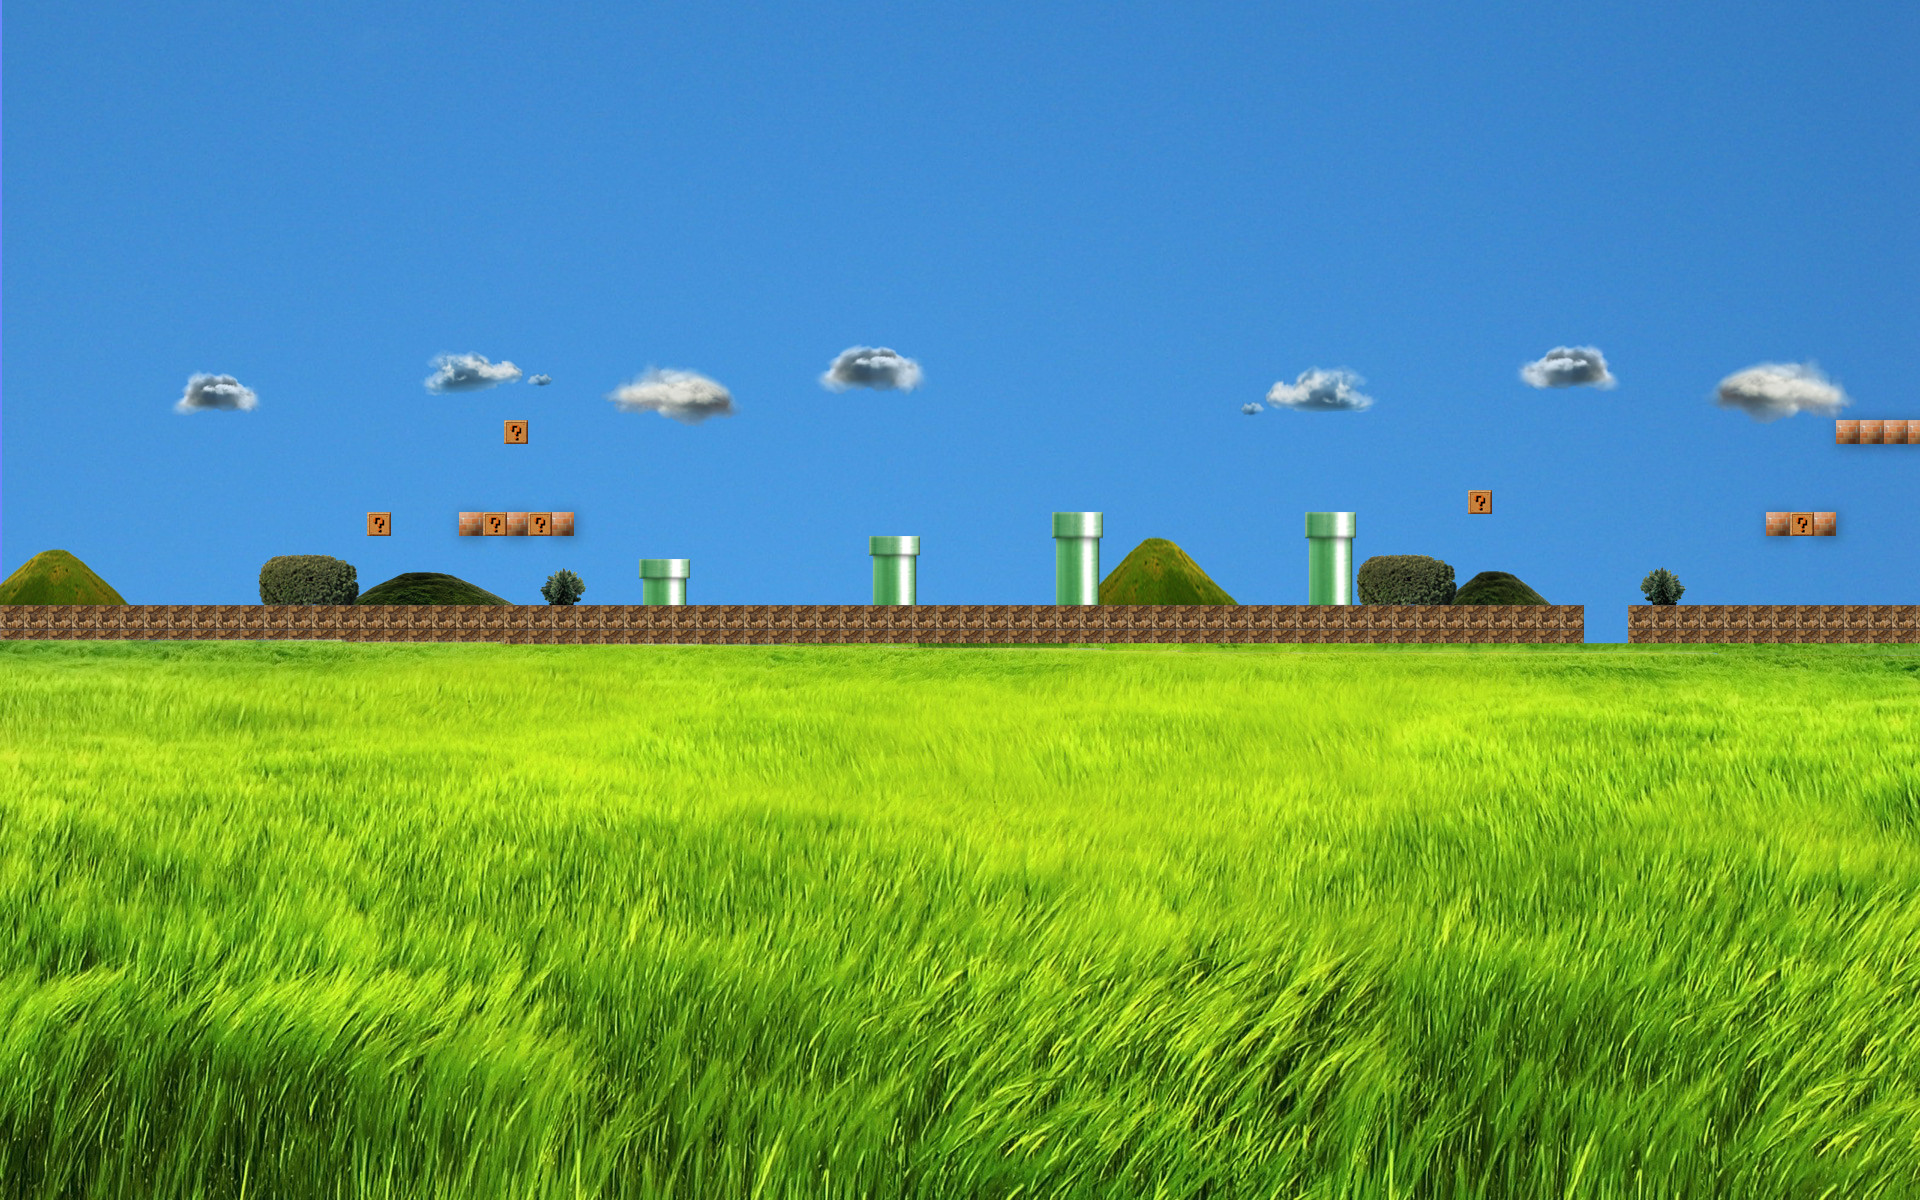 Realistic Super Mario Bros 1 first stage Wallpaper by trollkarl3